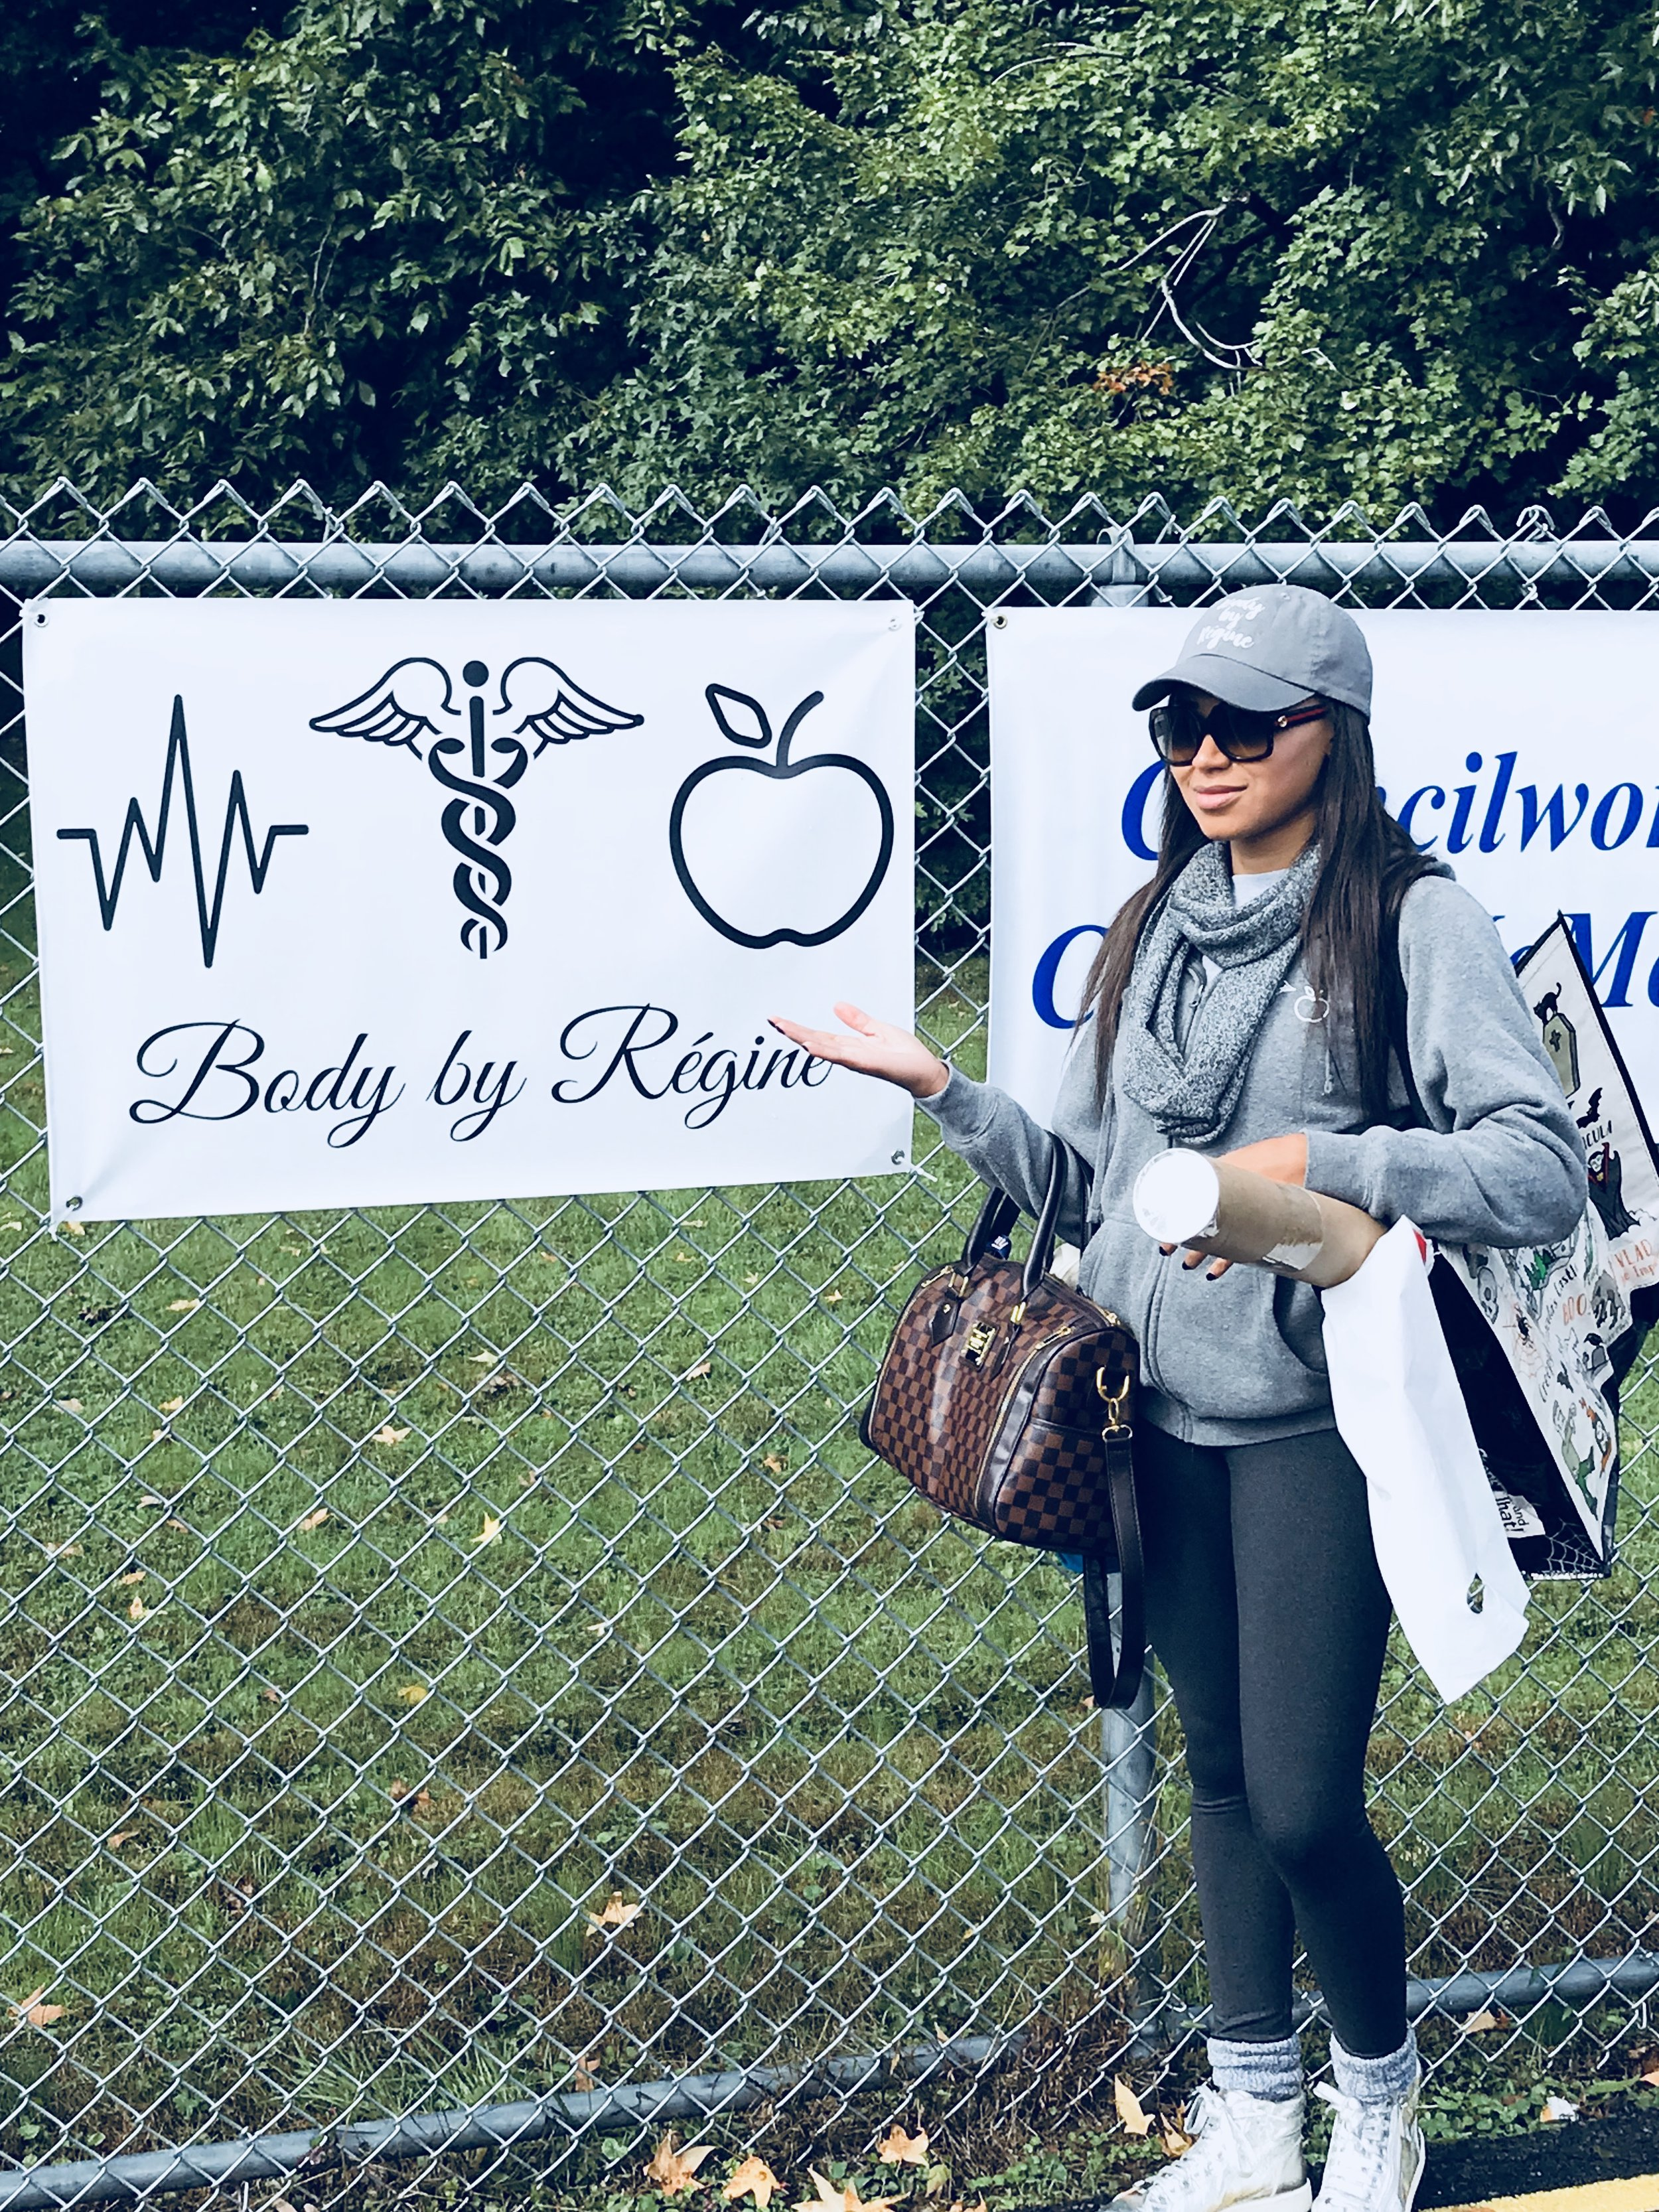 Englewood Cliffs School District Fall Festival - NORTH CLIFF SCHOOL12PM-4PM OCTOBER 13, 2018VISIT BODY BY REGINE FOR RAFFLES & GIVEAWAYS, PLUS ACTIVITIES FOR THE KIDS & FOOD!